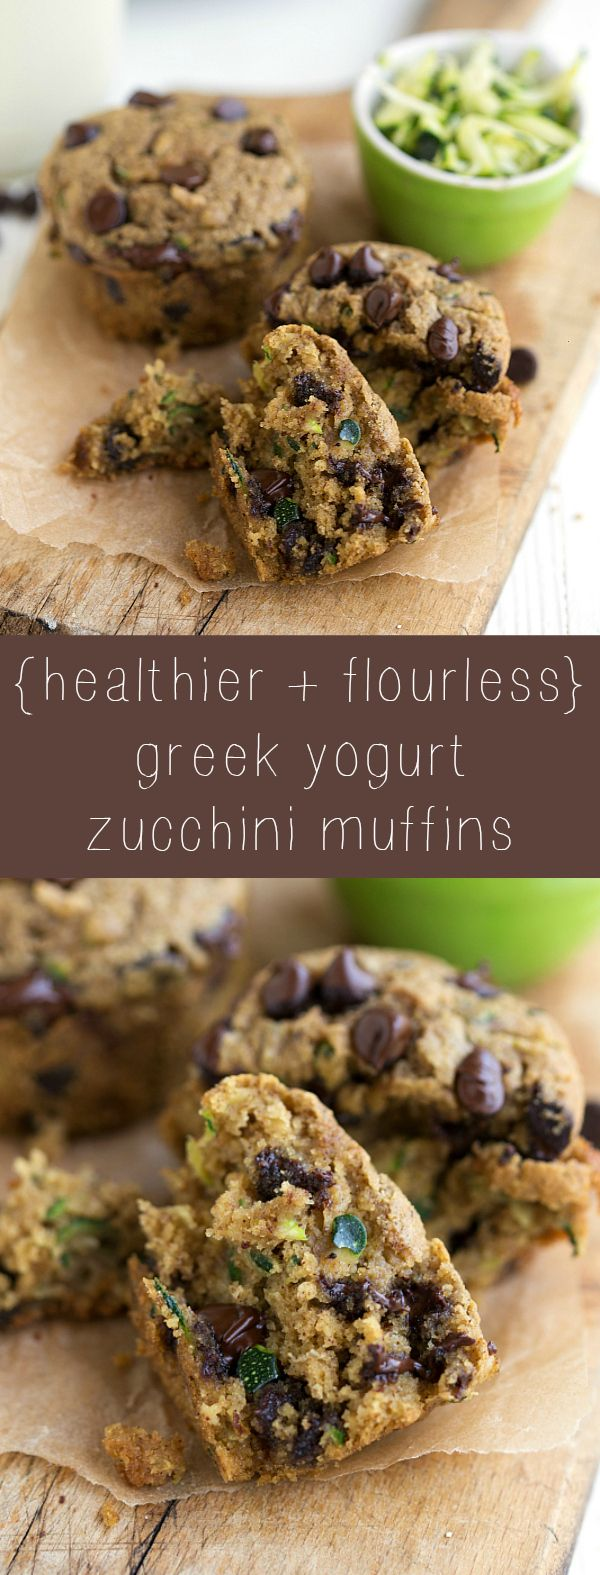 Flourless and healthy Greek yogurt zucchini muffins